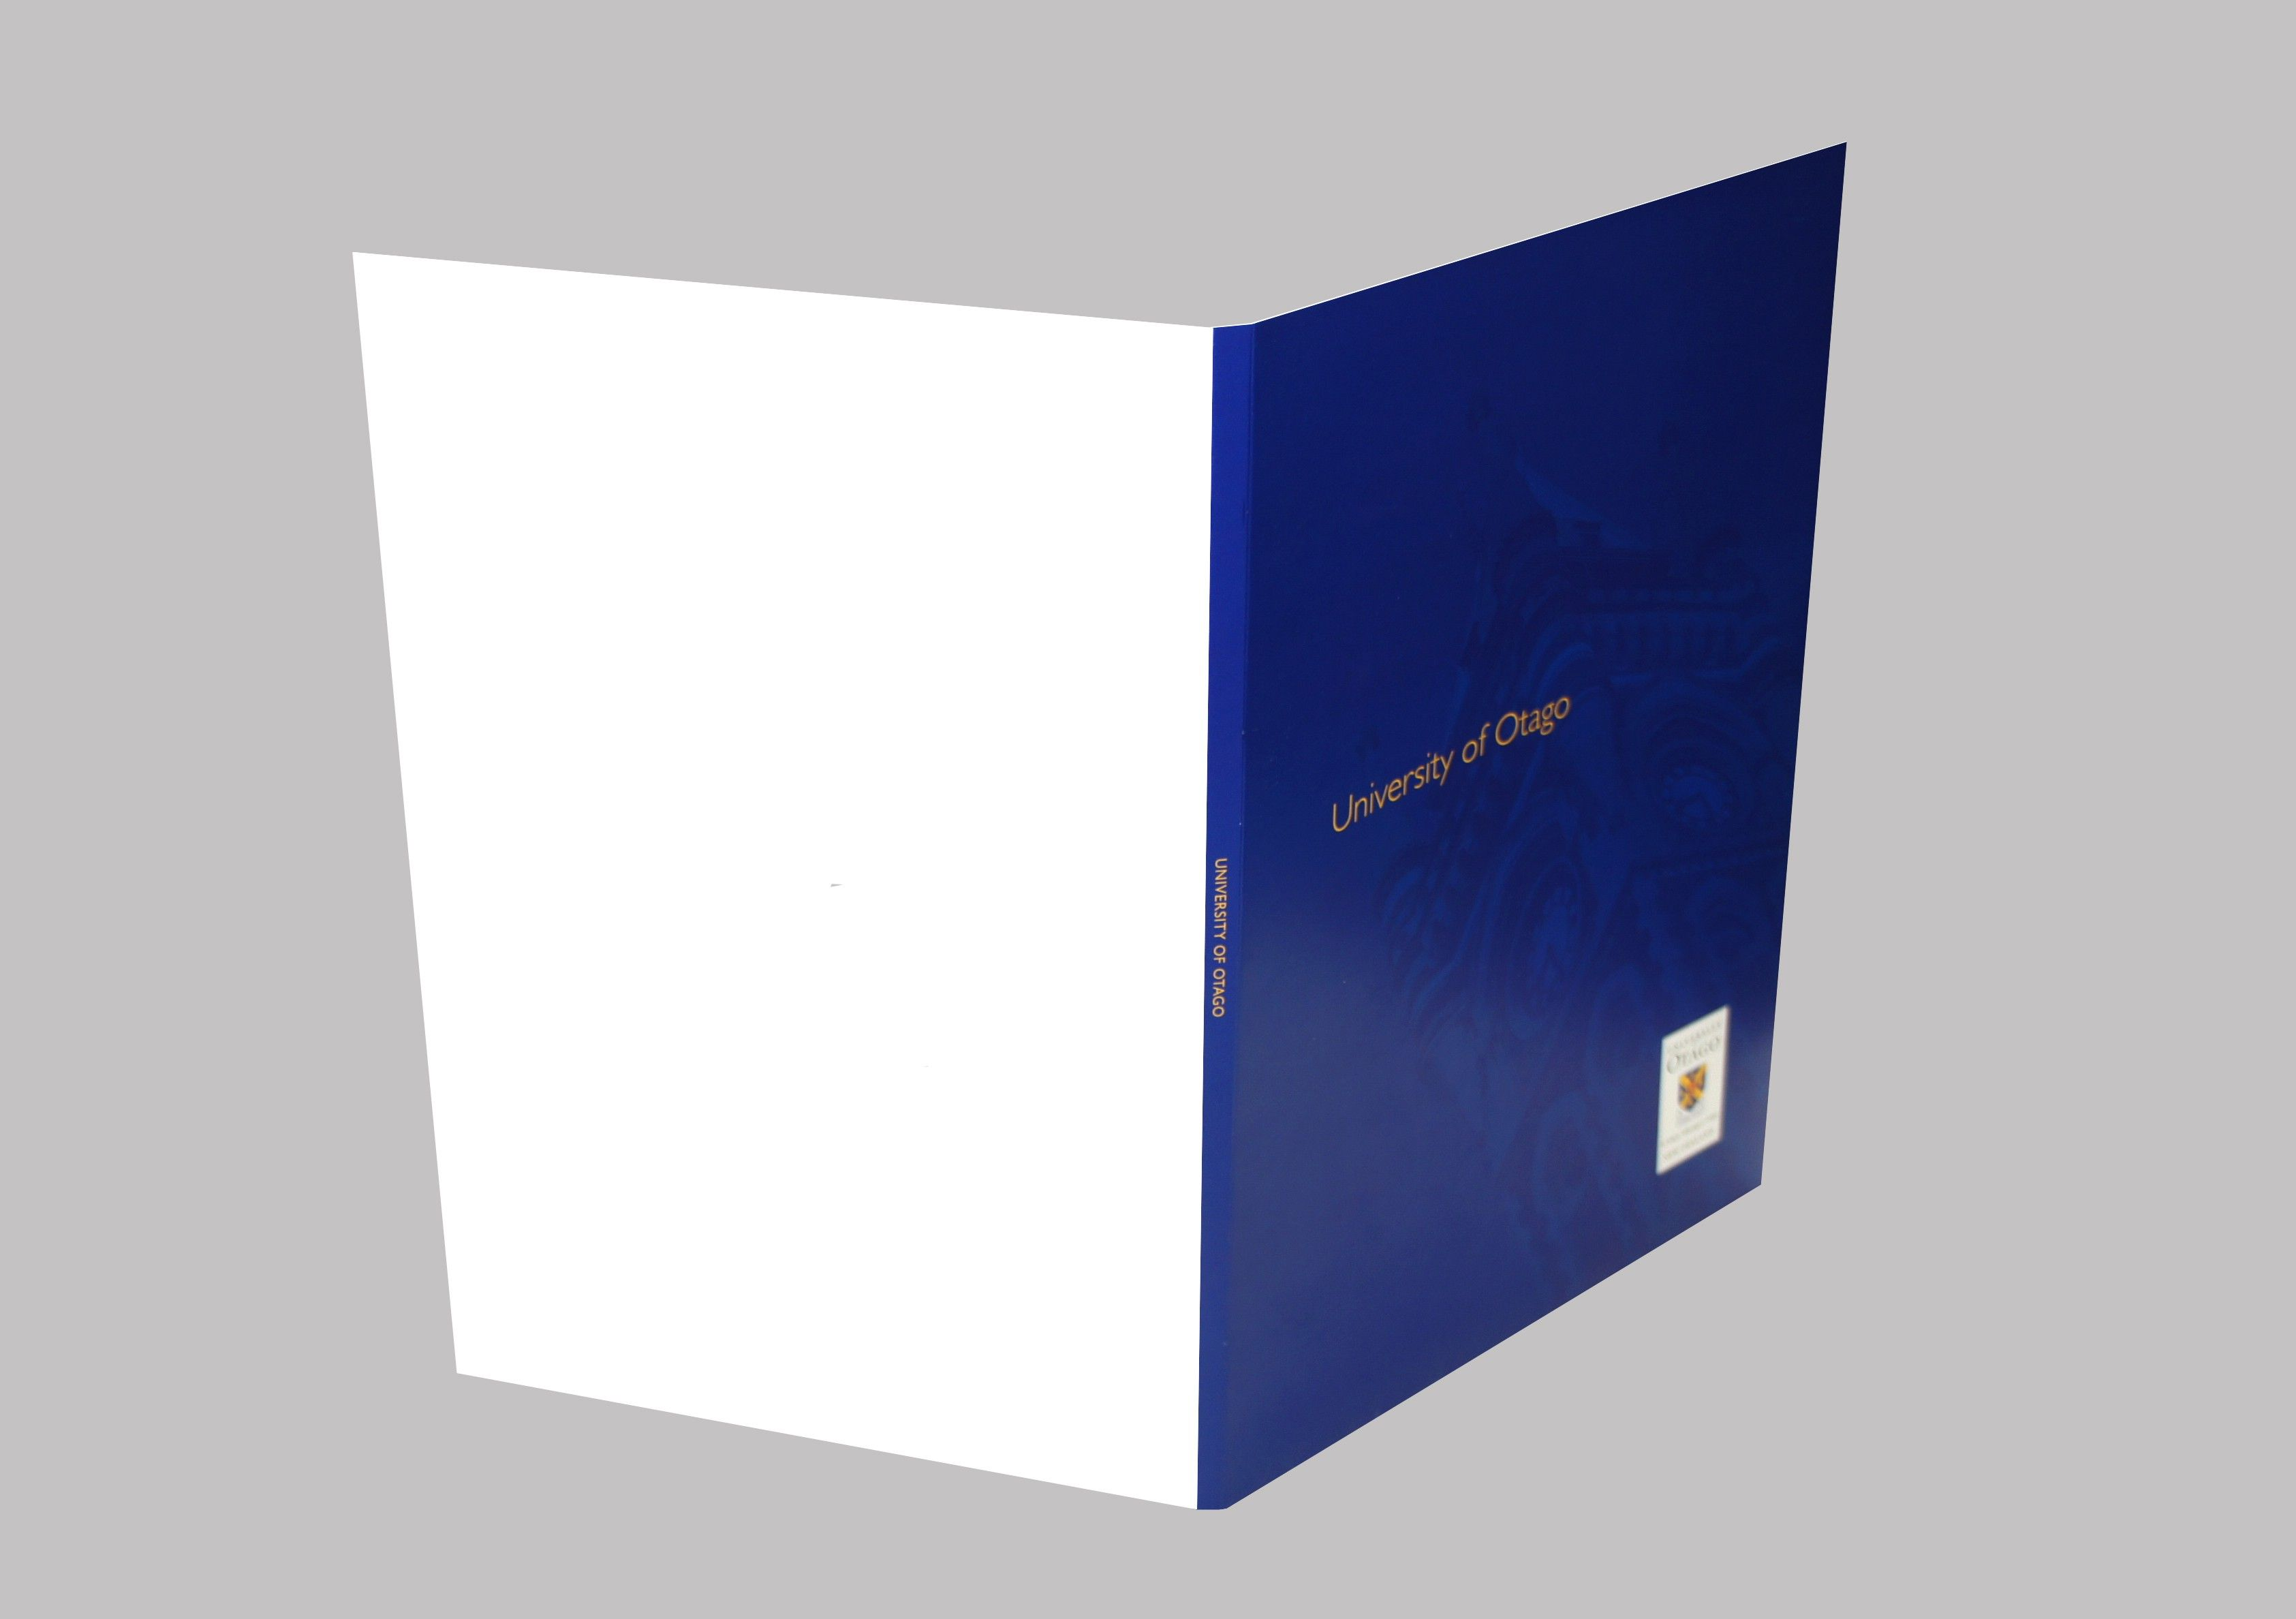 A4 Presentation Folder  Stationery  Gifts, University Of Otago